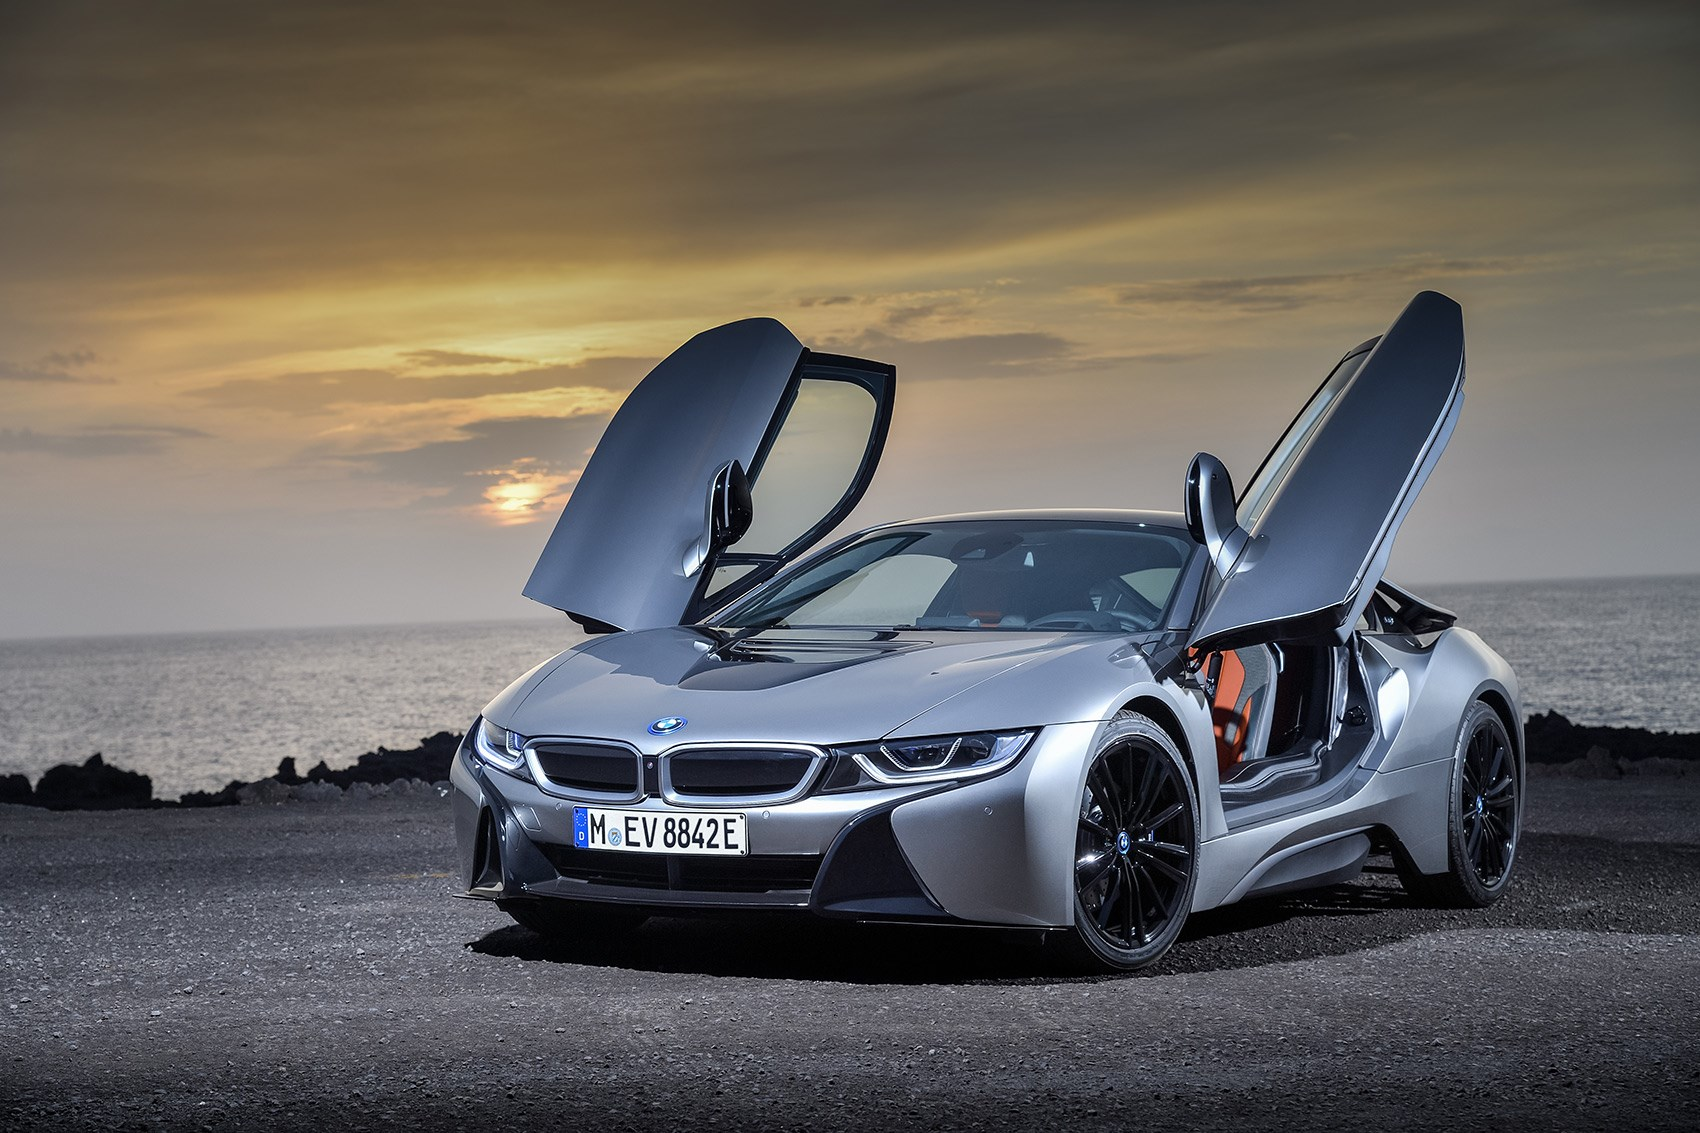 The New 2018 Model Year Bmw I8 Unveiled At Detroit Motor Show